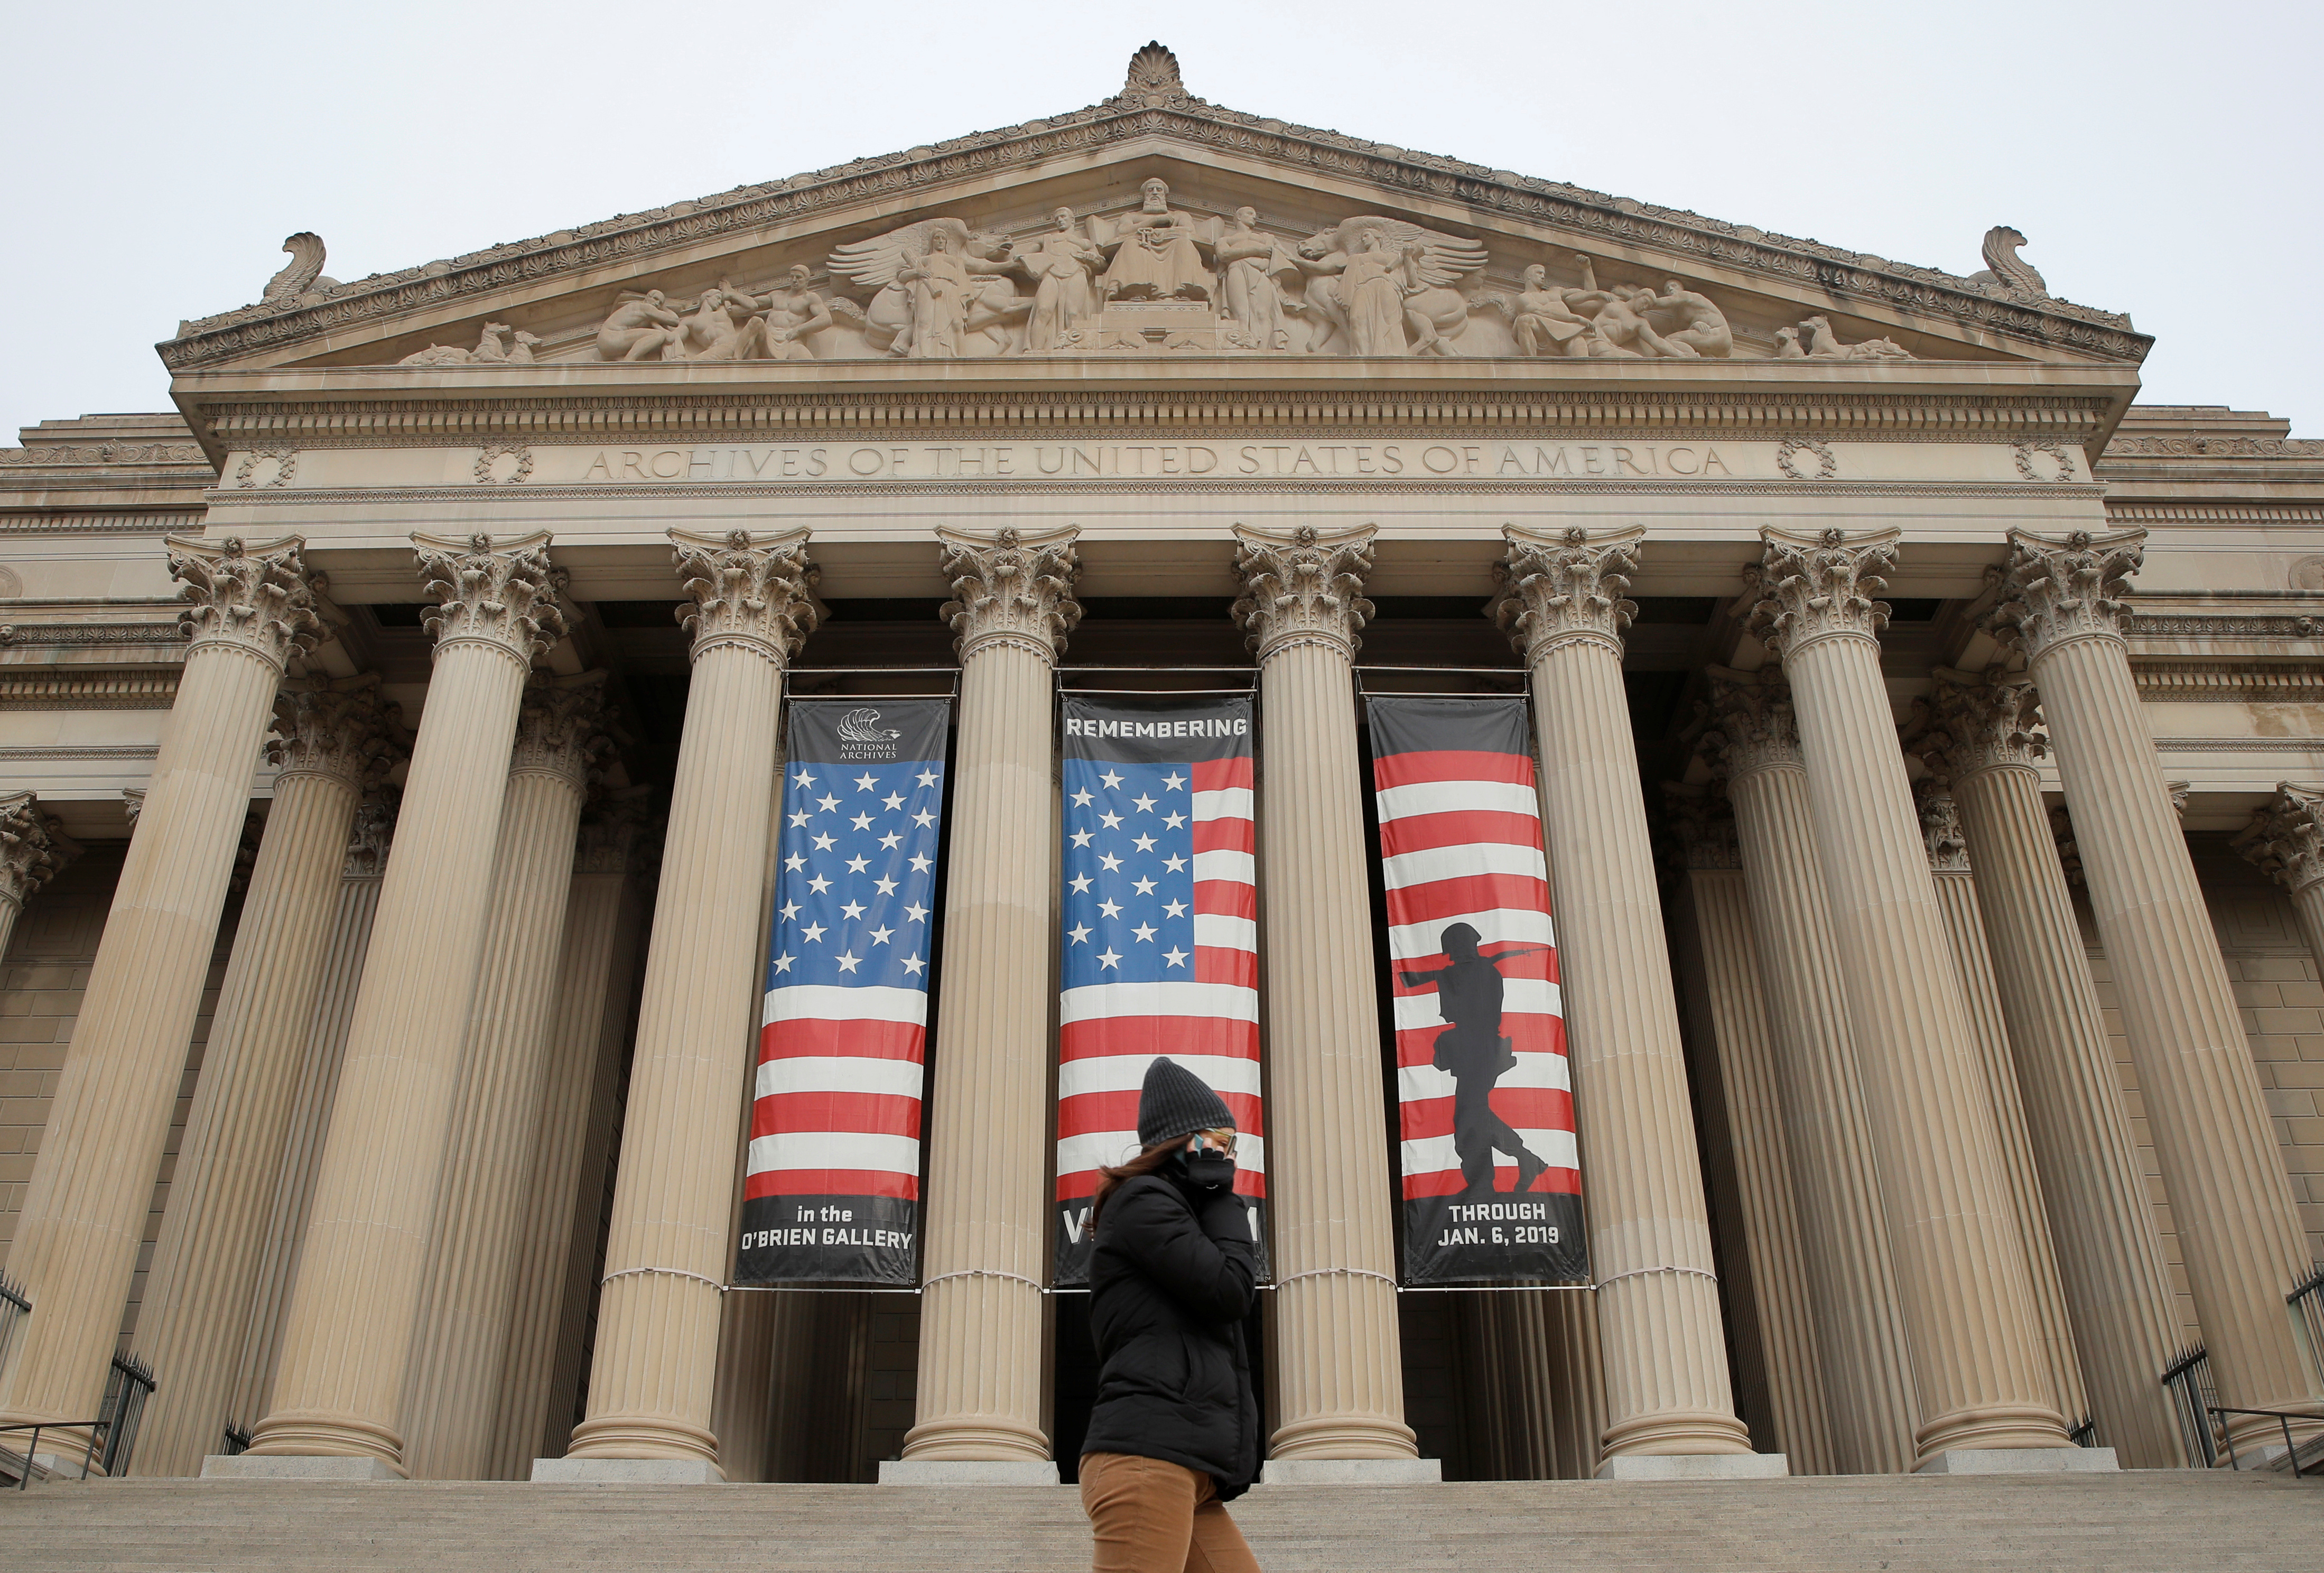 A woman walks past the entrance to the National Archives which is closed due to a partial government shutdown continues, in Washington, U.S., January 7, 2019. REUTERS/Jim Young